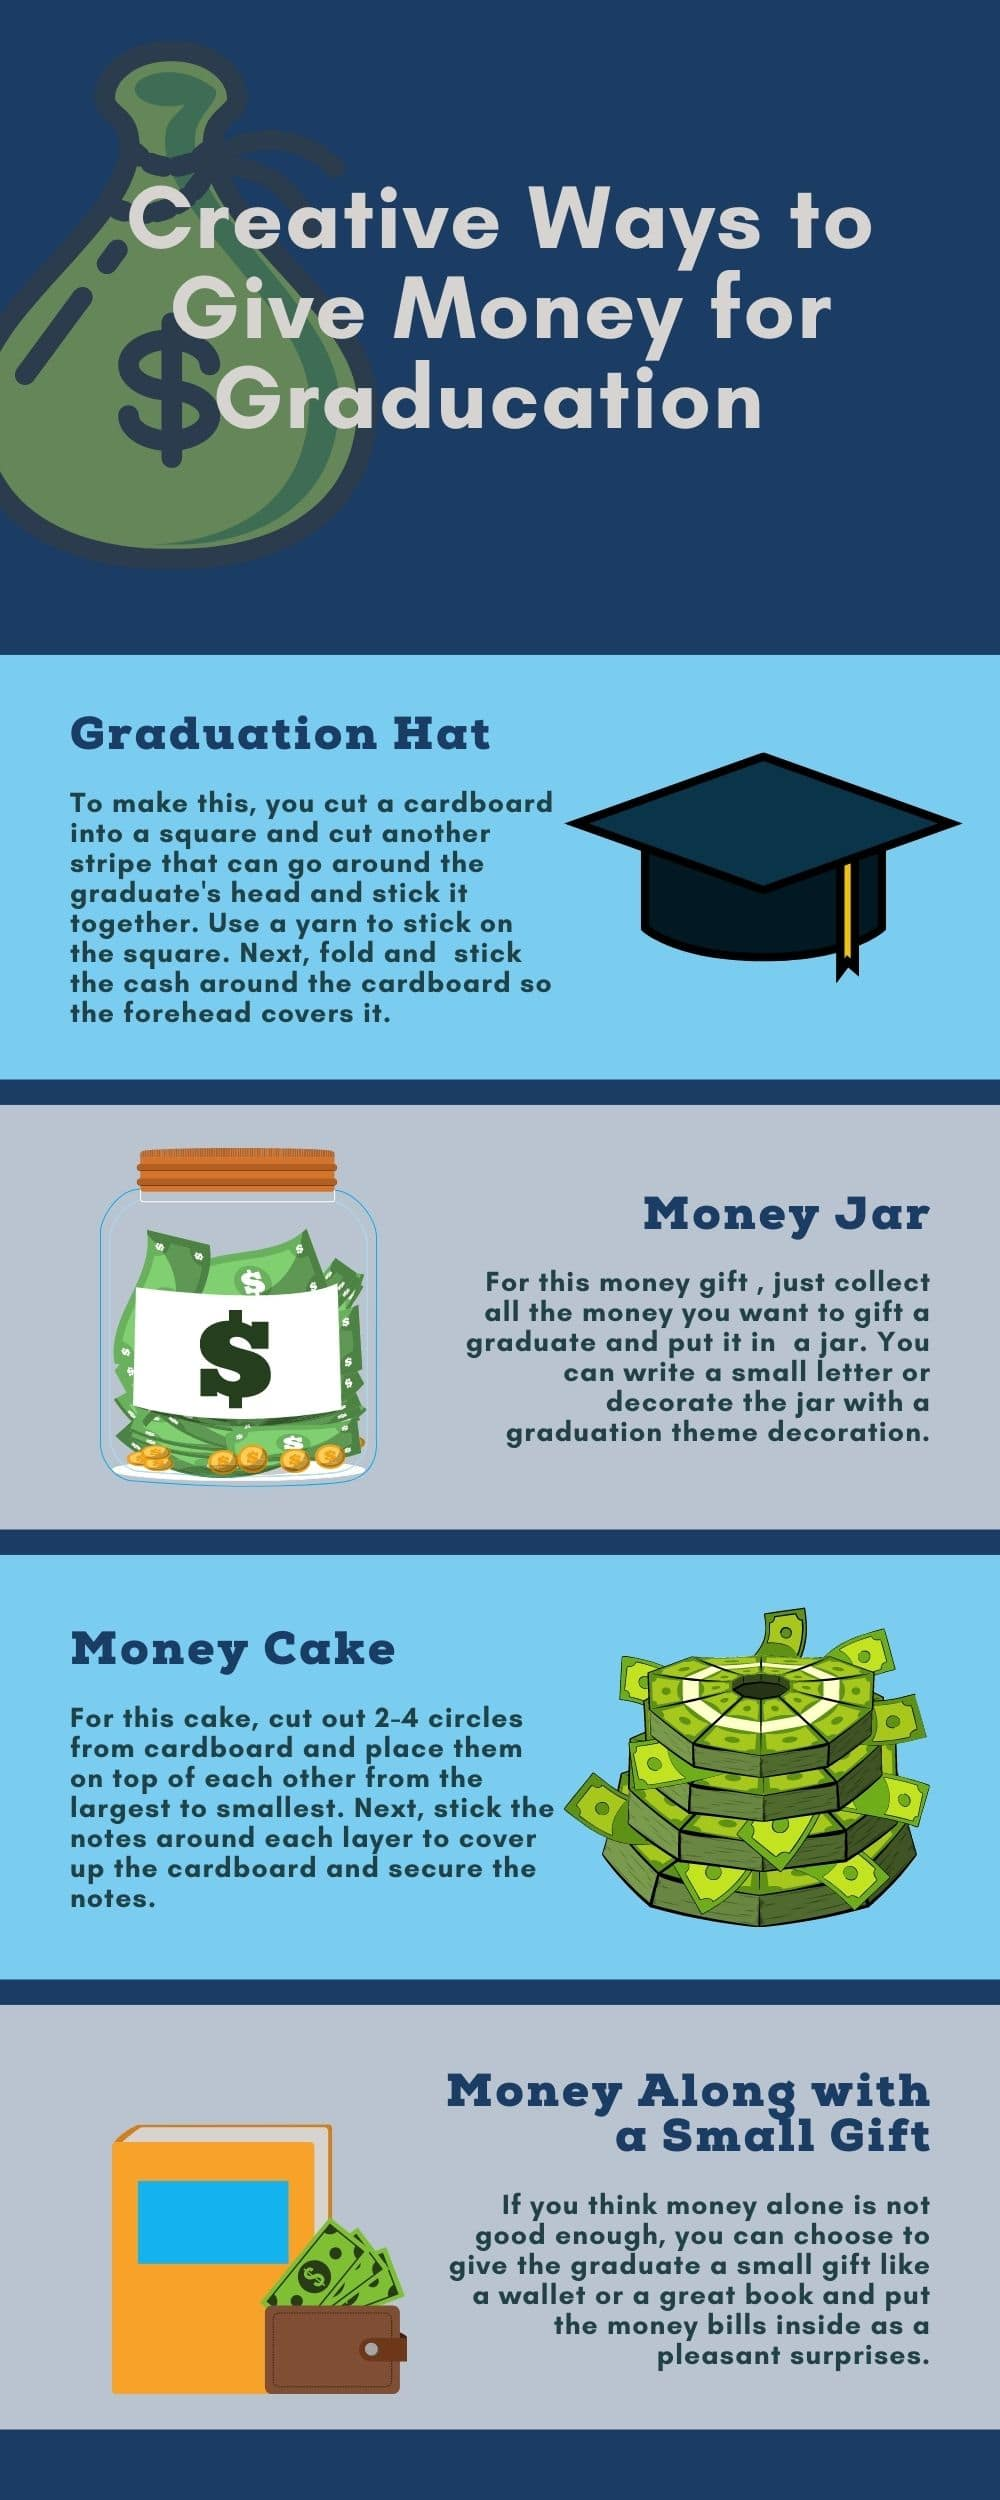 Creative Ways to Give Money for Graducation